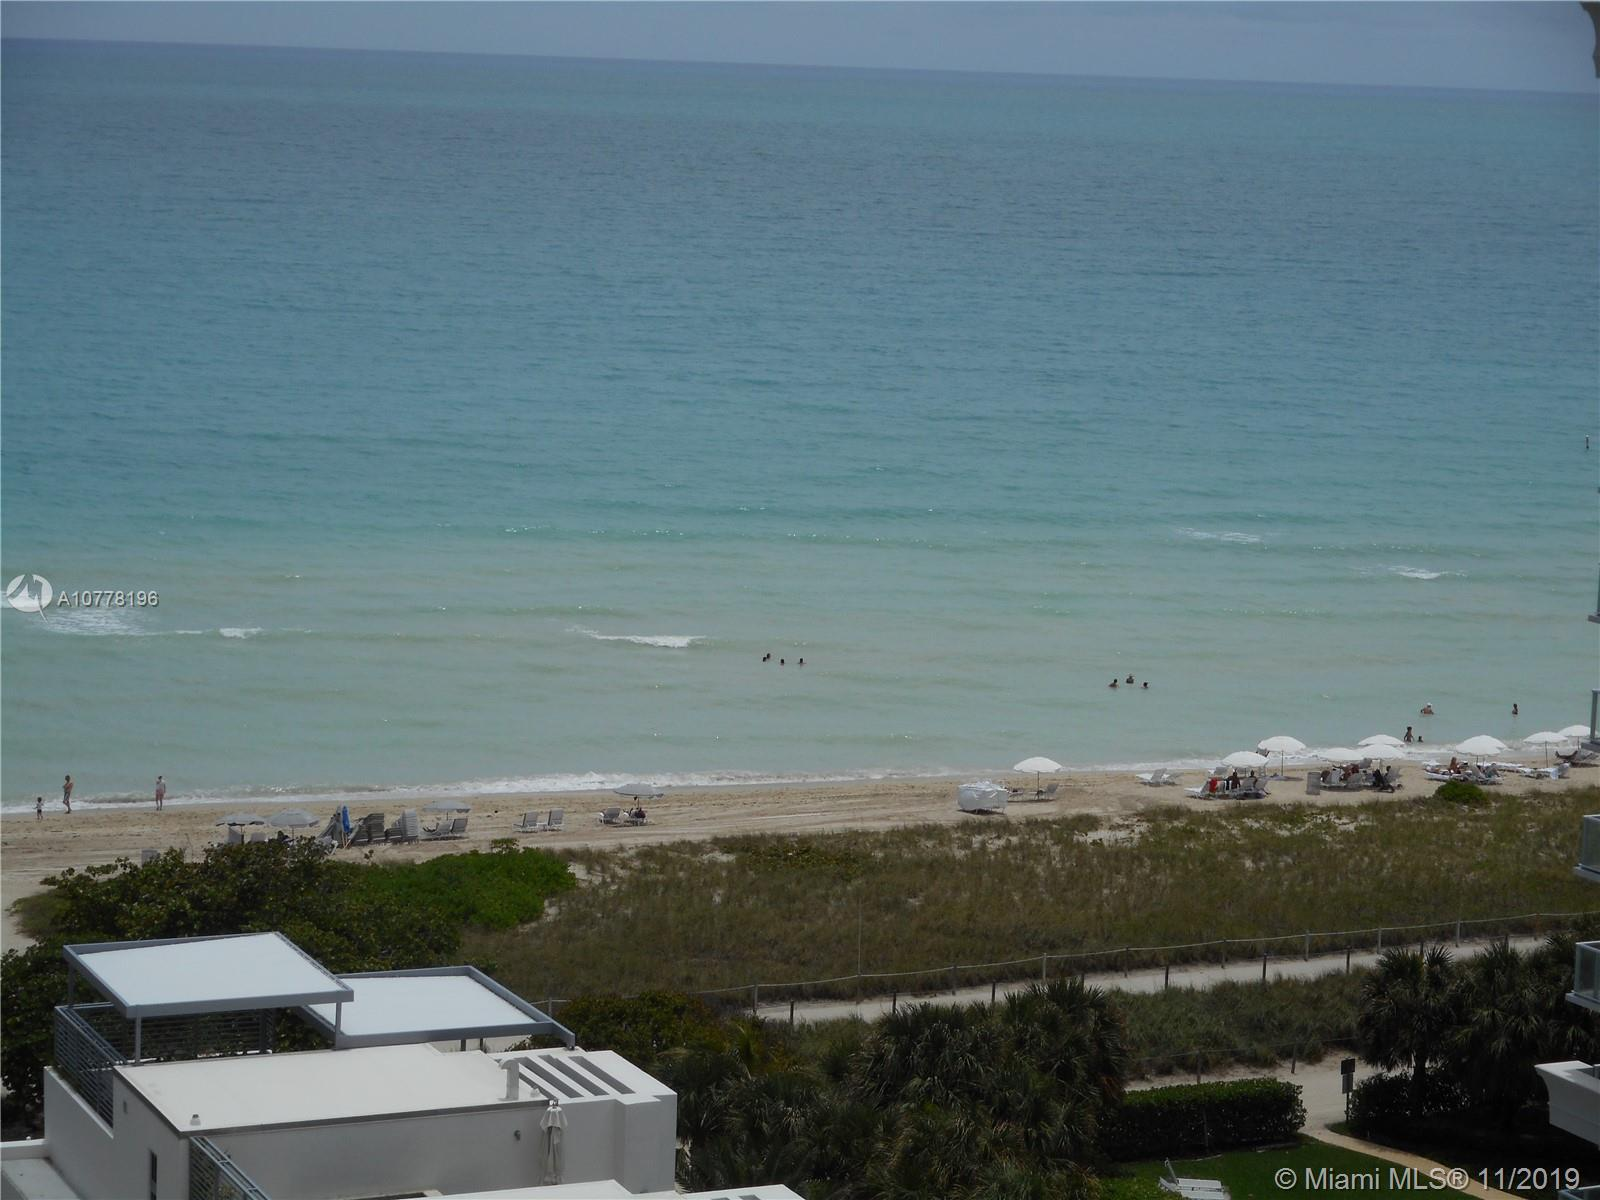 Investors/Foreigners Dream! Owner financing available! Scenic views from this beautiful S.W corner condo. Enjoy the sunrises (OCEAN VIEWS) and sunsets (CITY VIEWS) from your large private balcony. Currently rented till 11/2020 for $2,500 - 24-hour notice to show